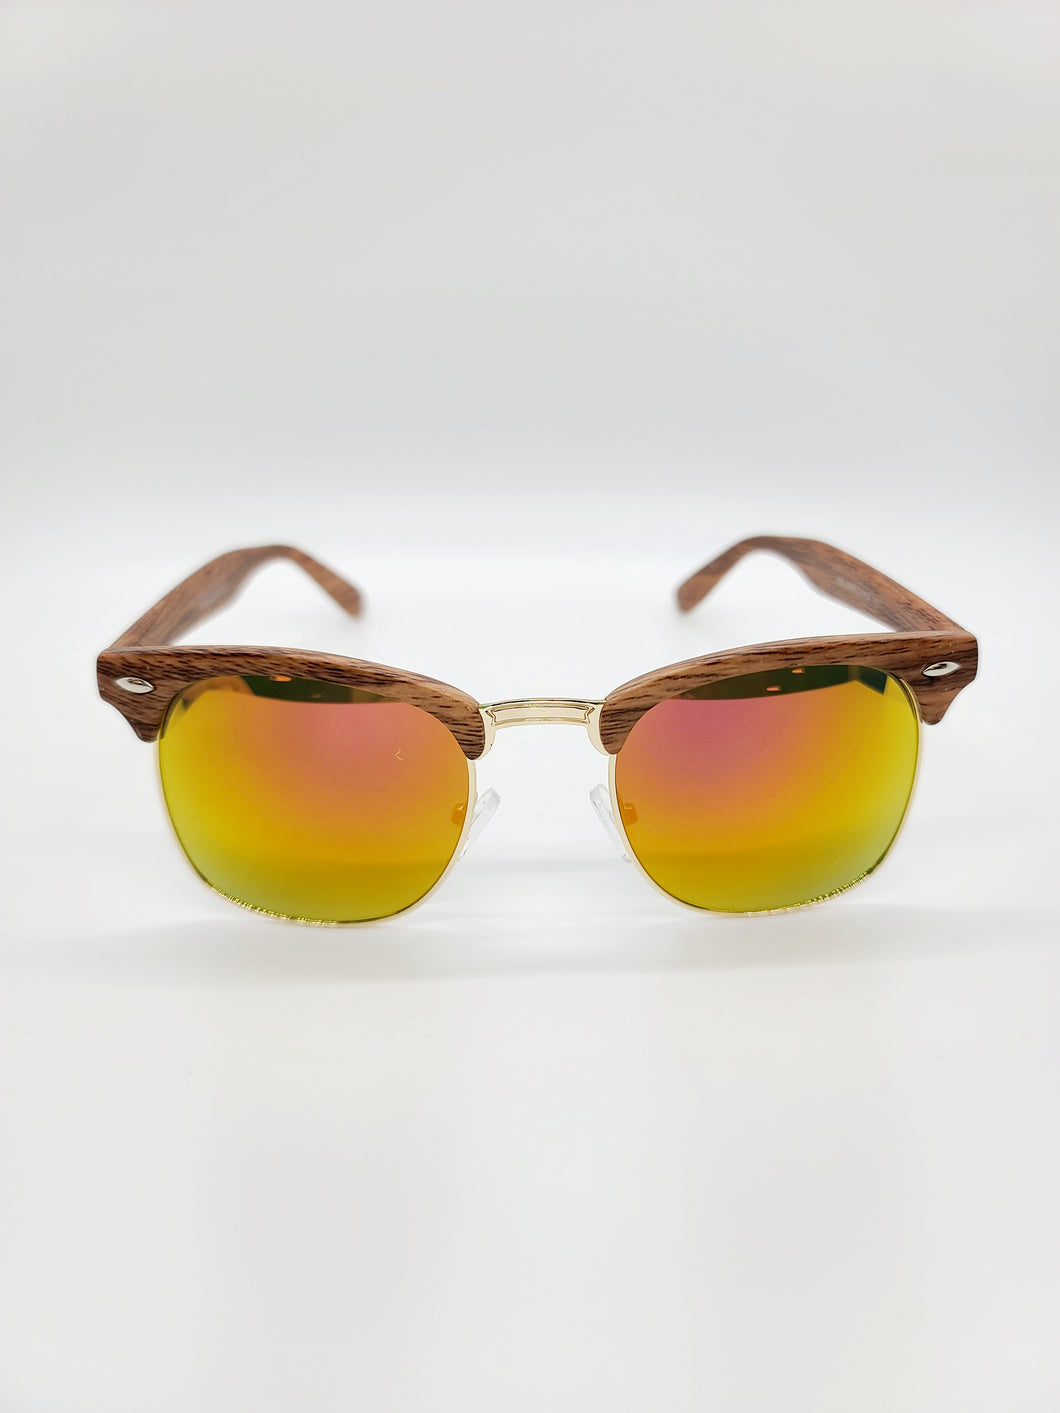 Aviator style sunglasses with wood pattern frames and yellow/orange lenses